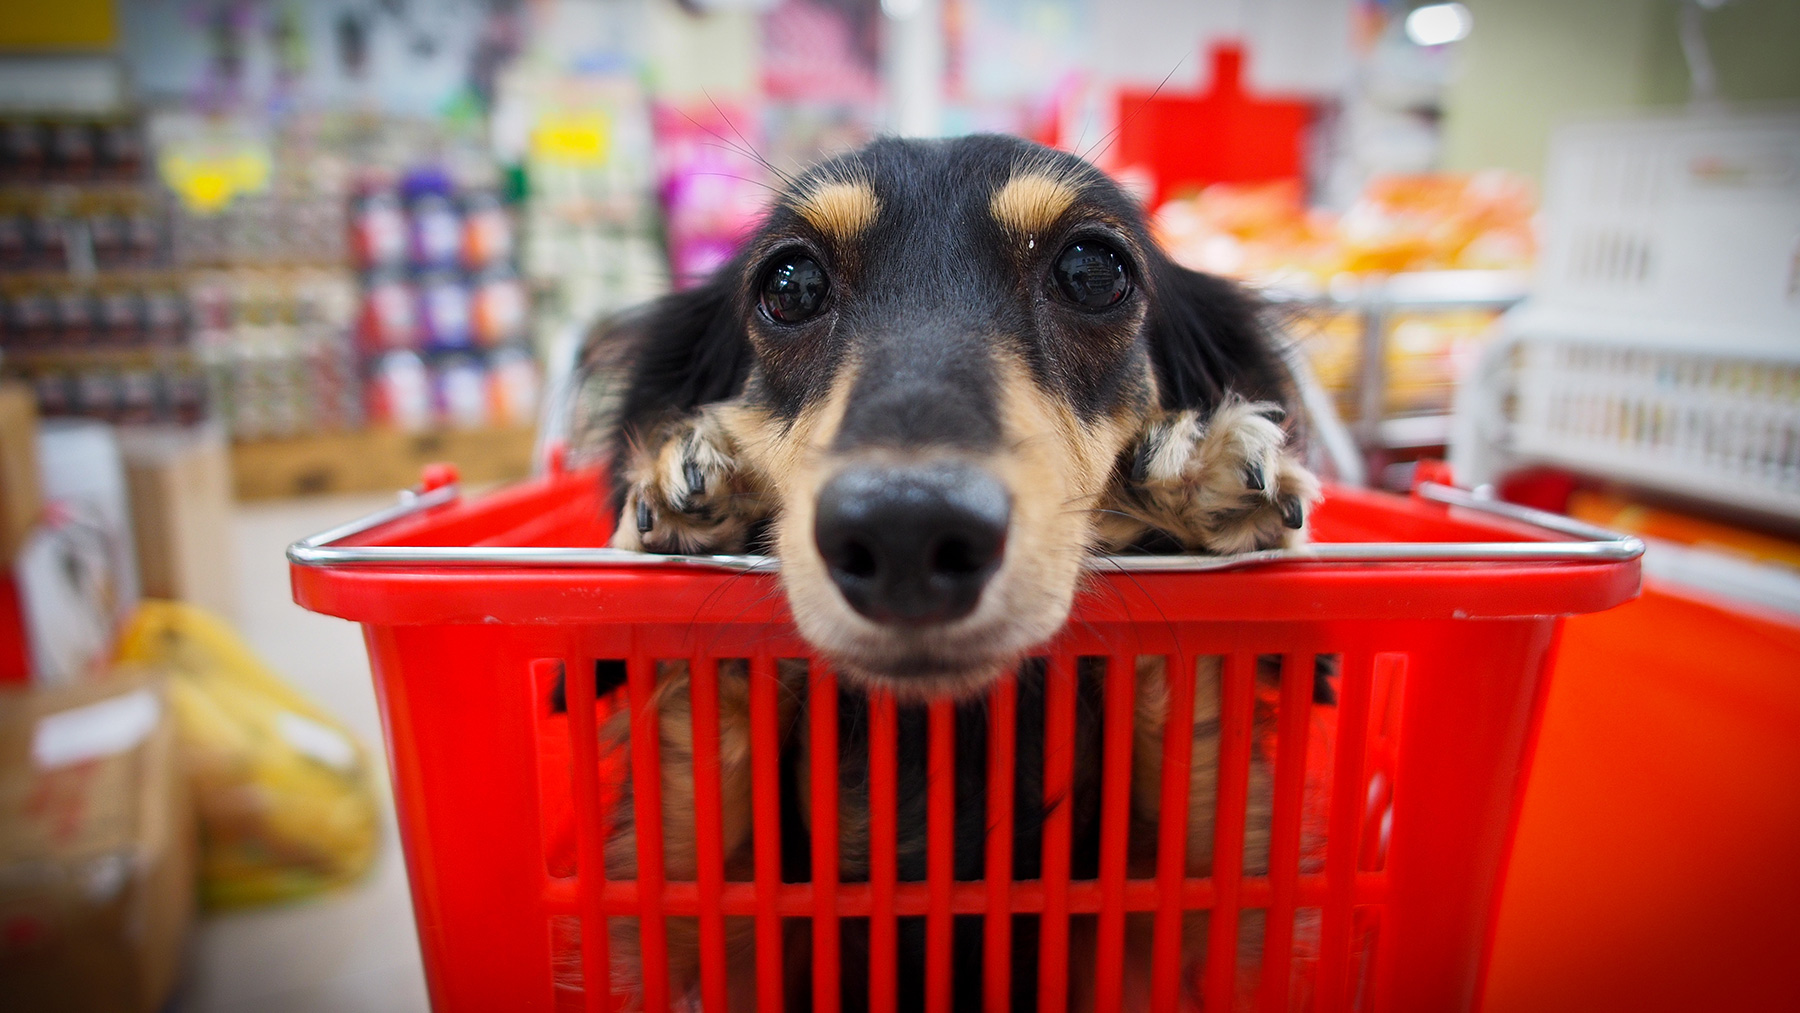 Dog in shopping basket